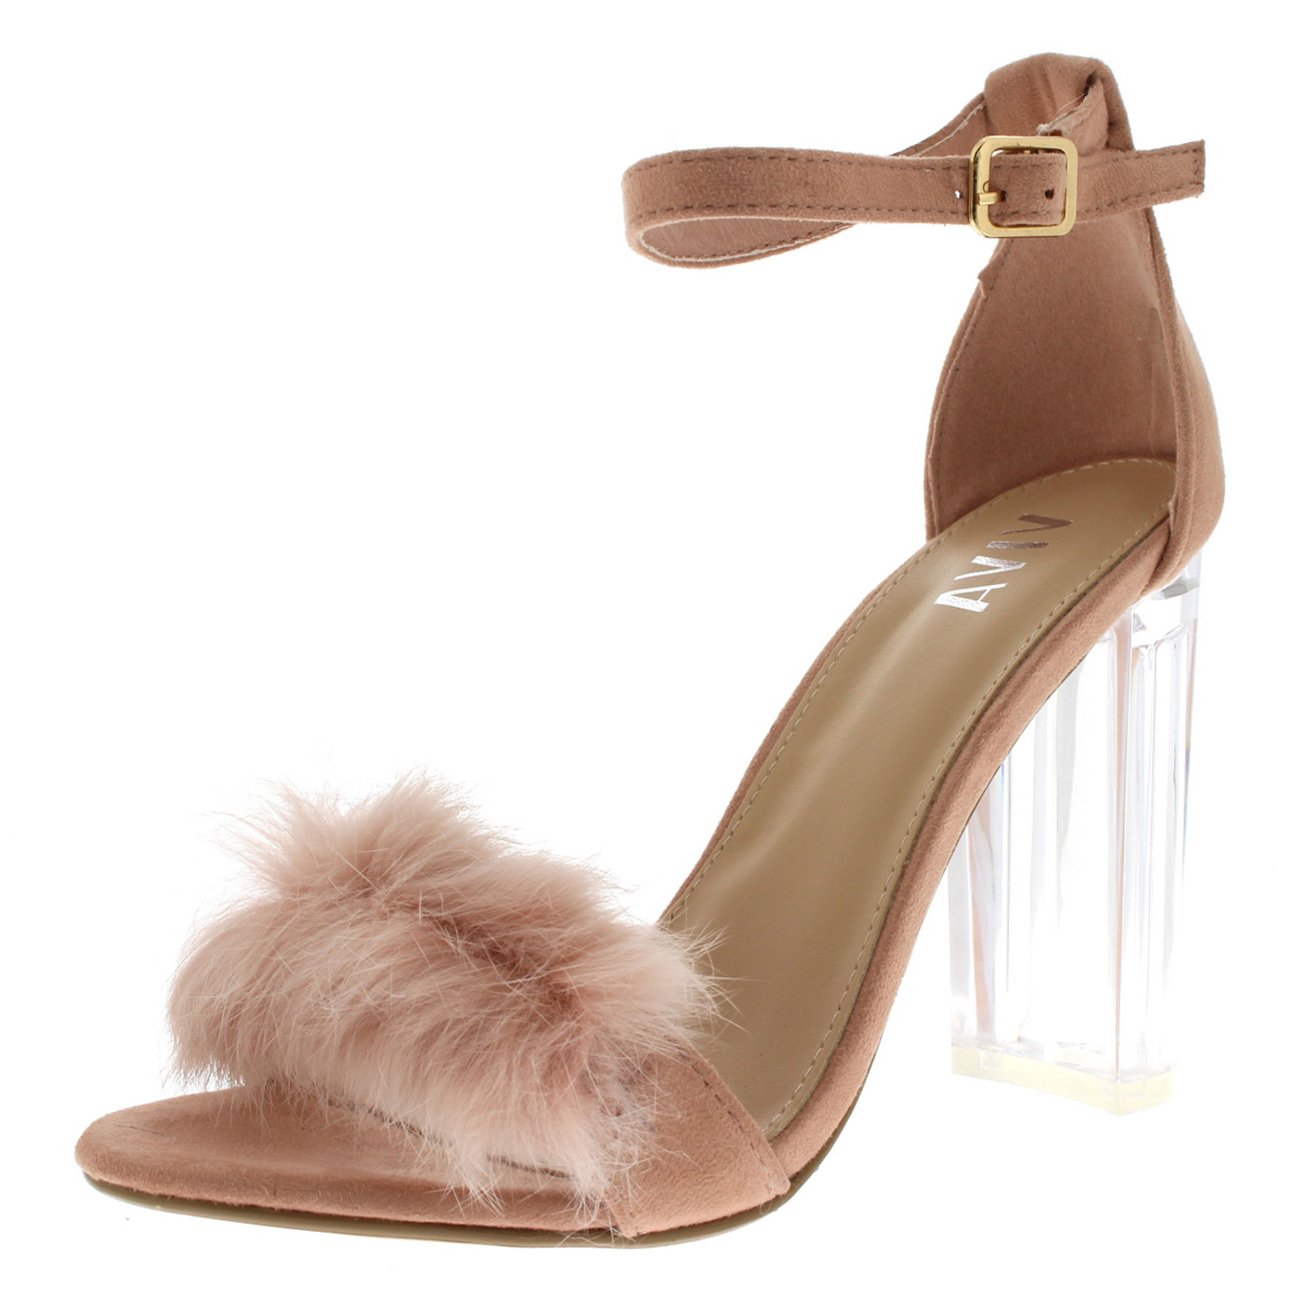 Viva Womens Fluffy Glass Block Heel Party Cut Out Fashion High Heels Pumps - Pink KL0281G 6US/37